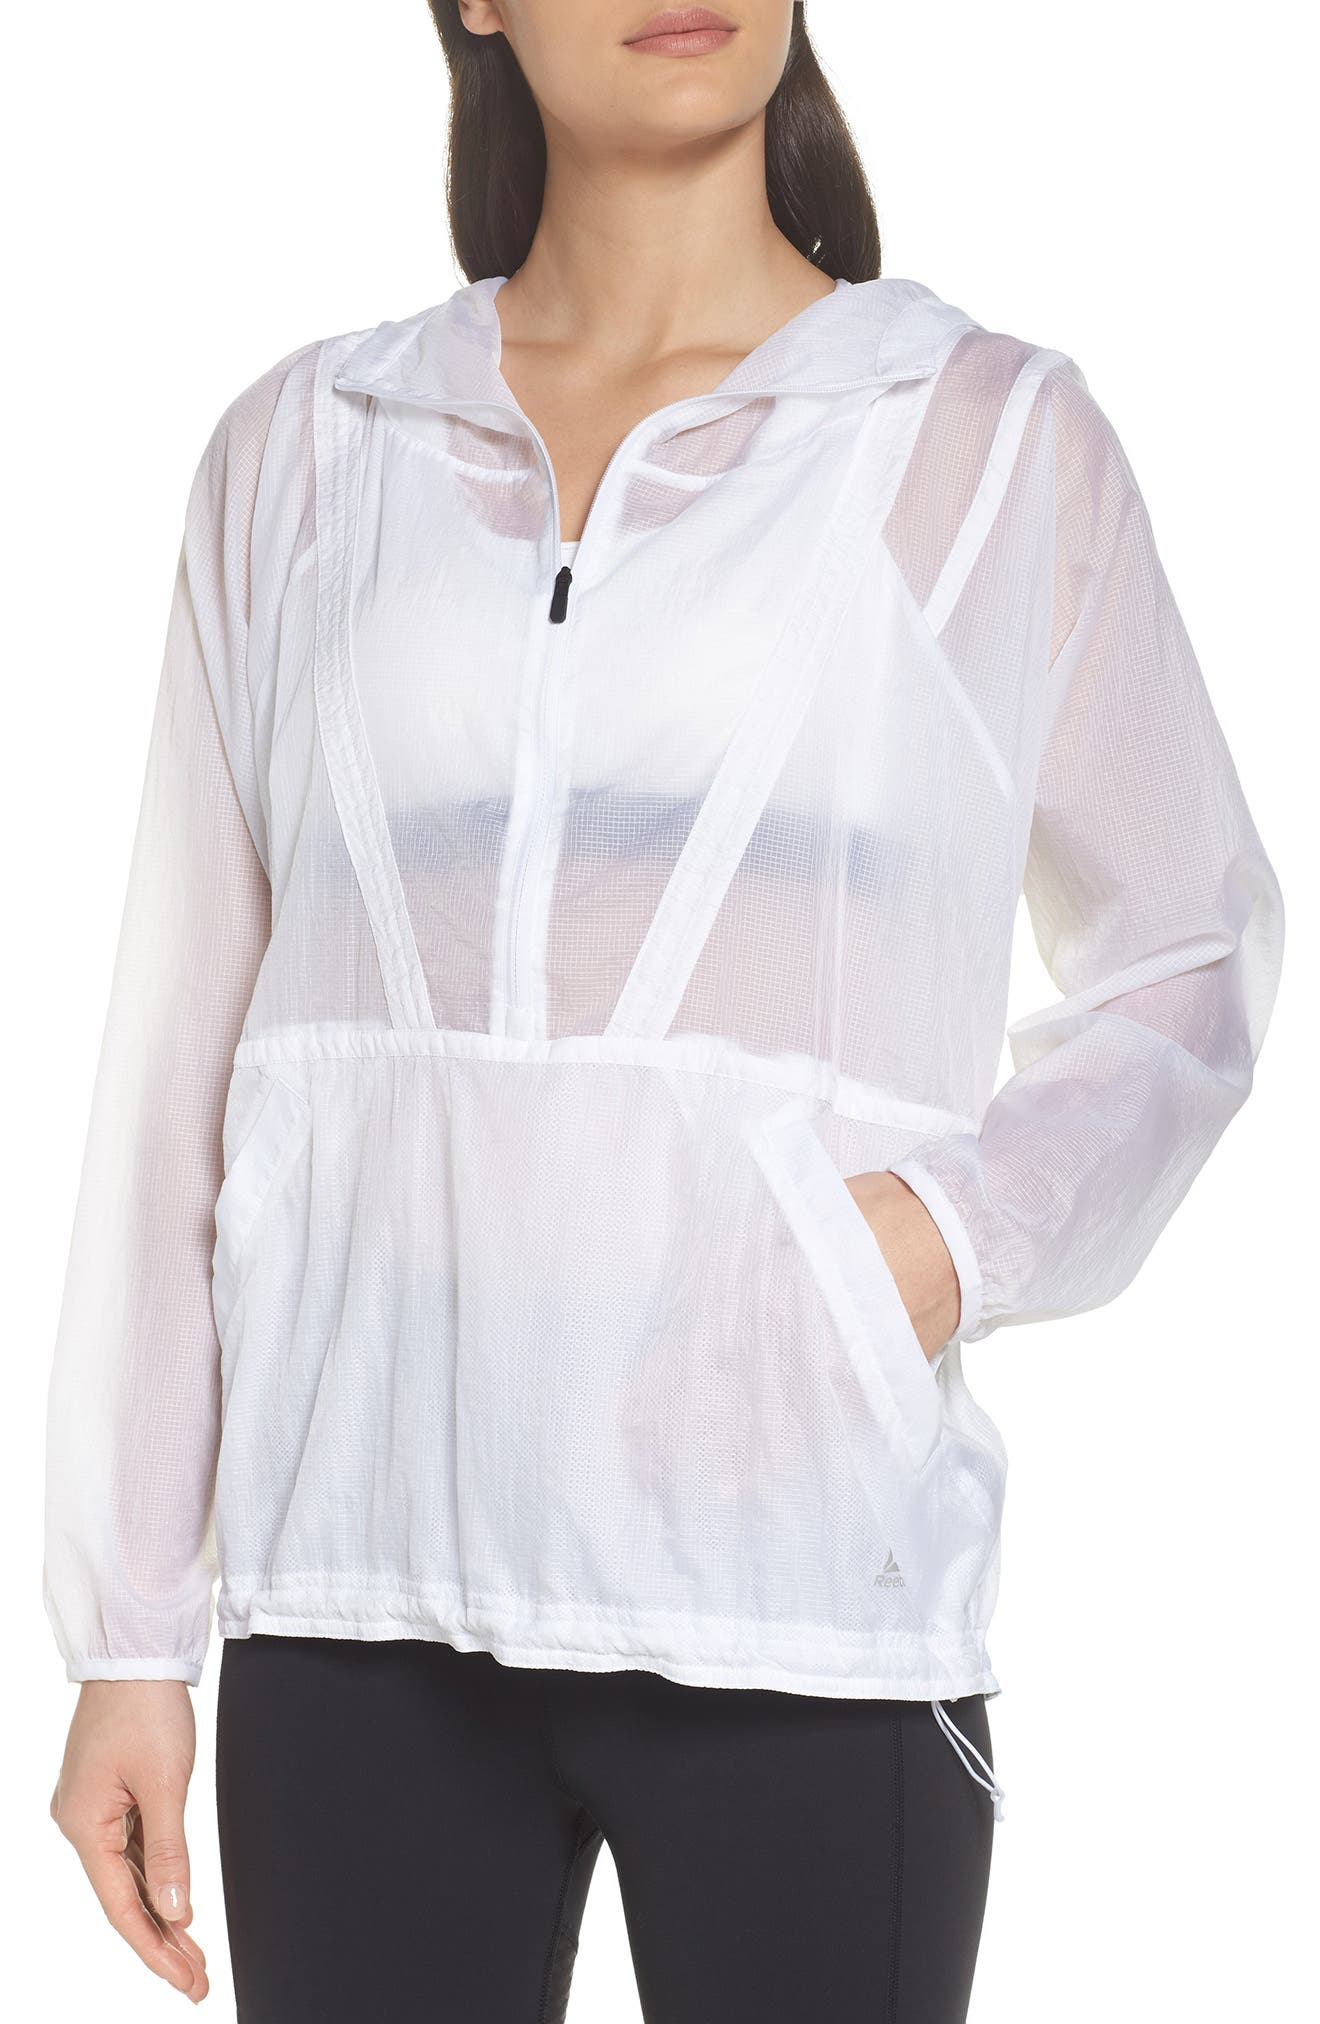 Packable Parachute Anorak,                         Main,                         color, White